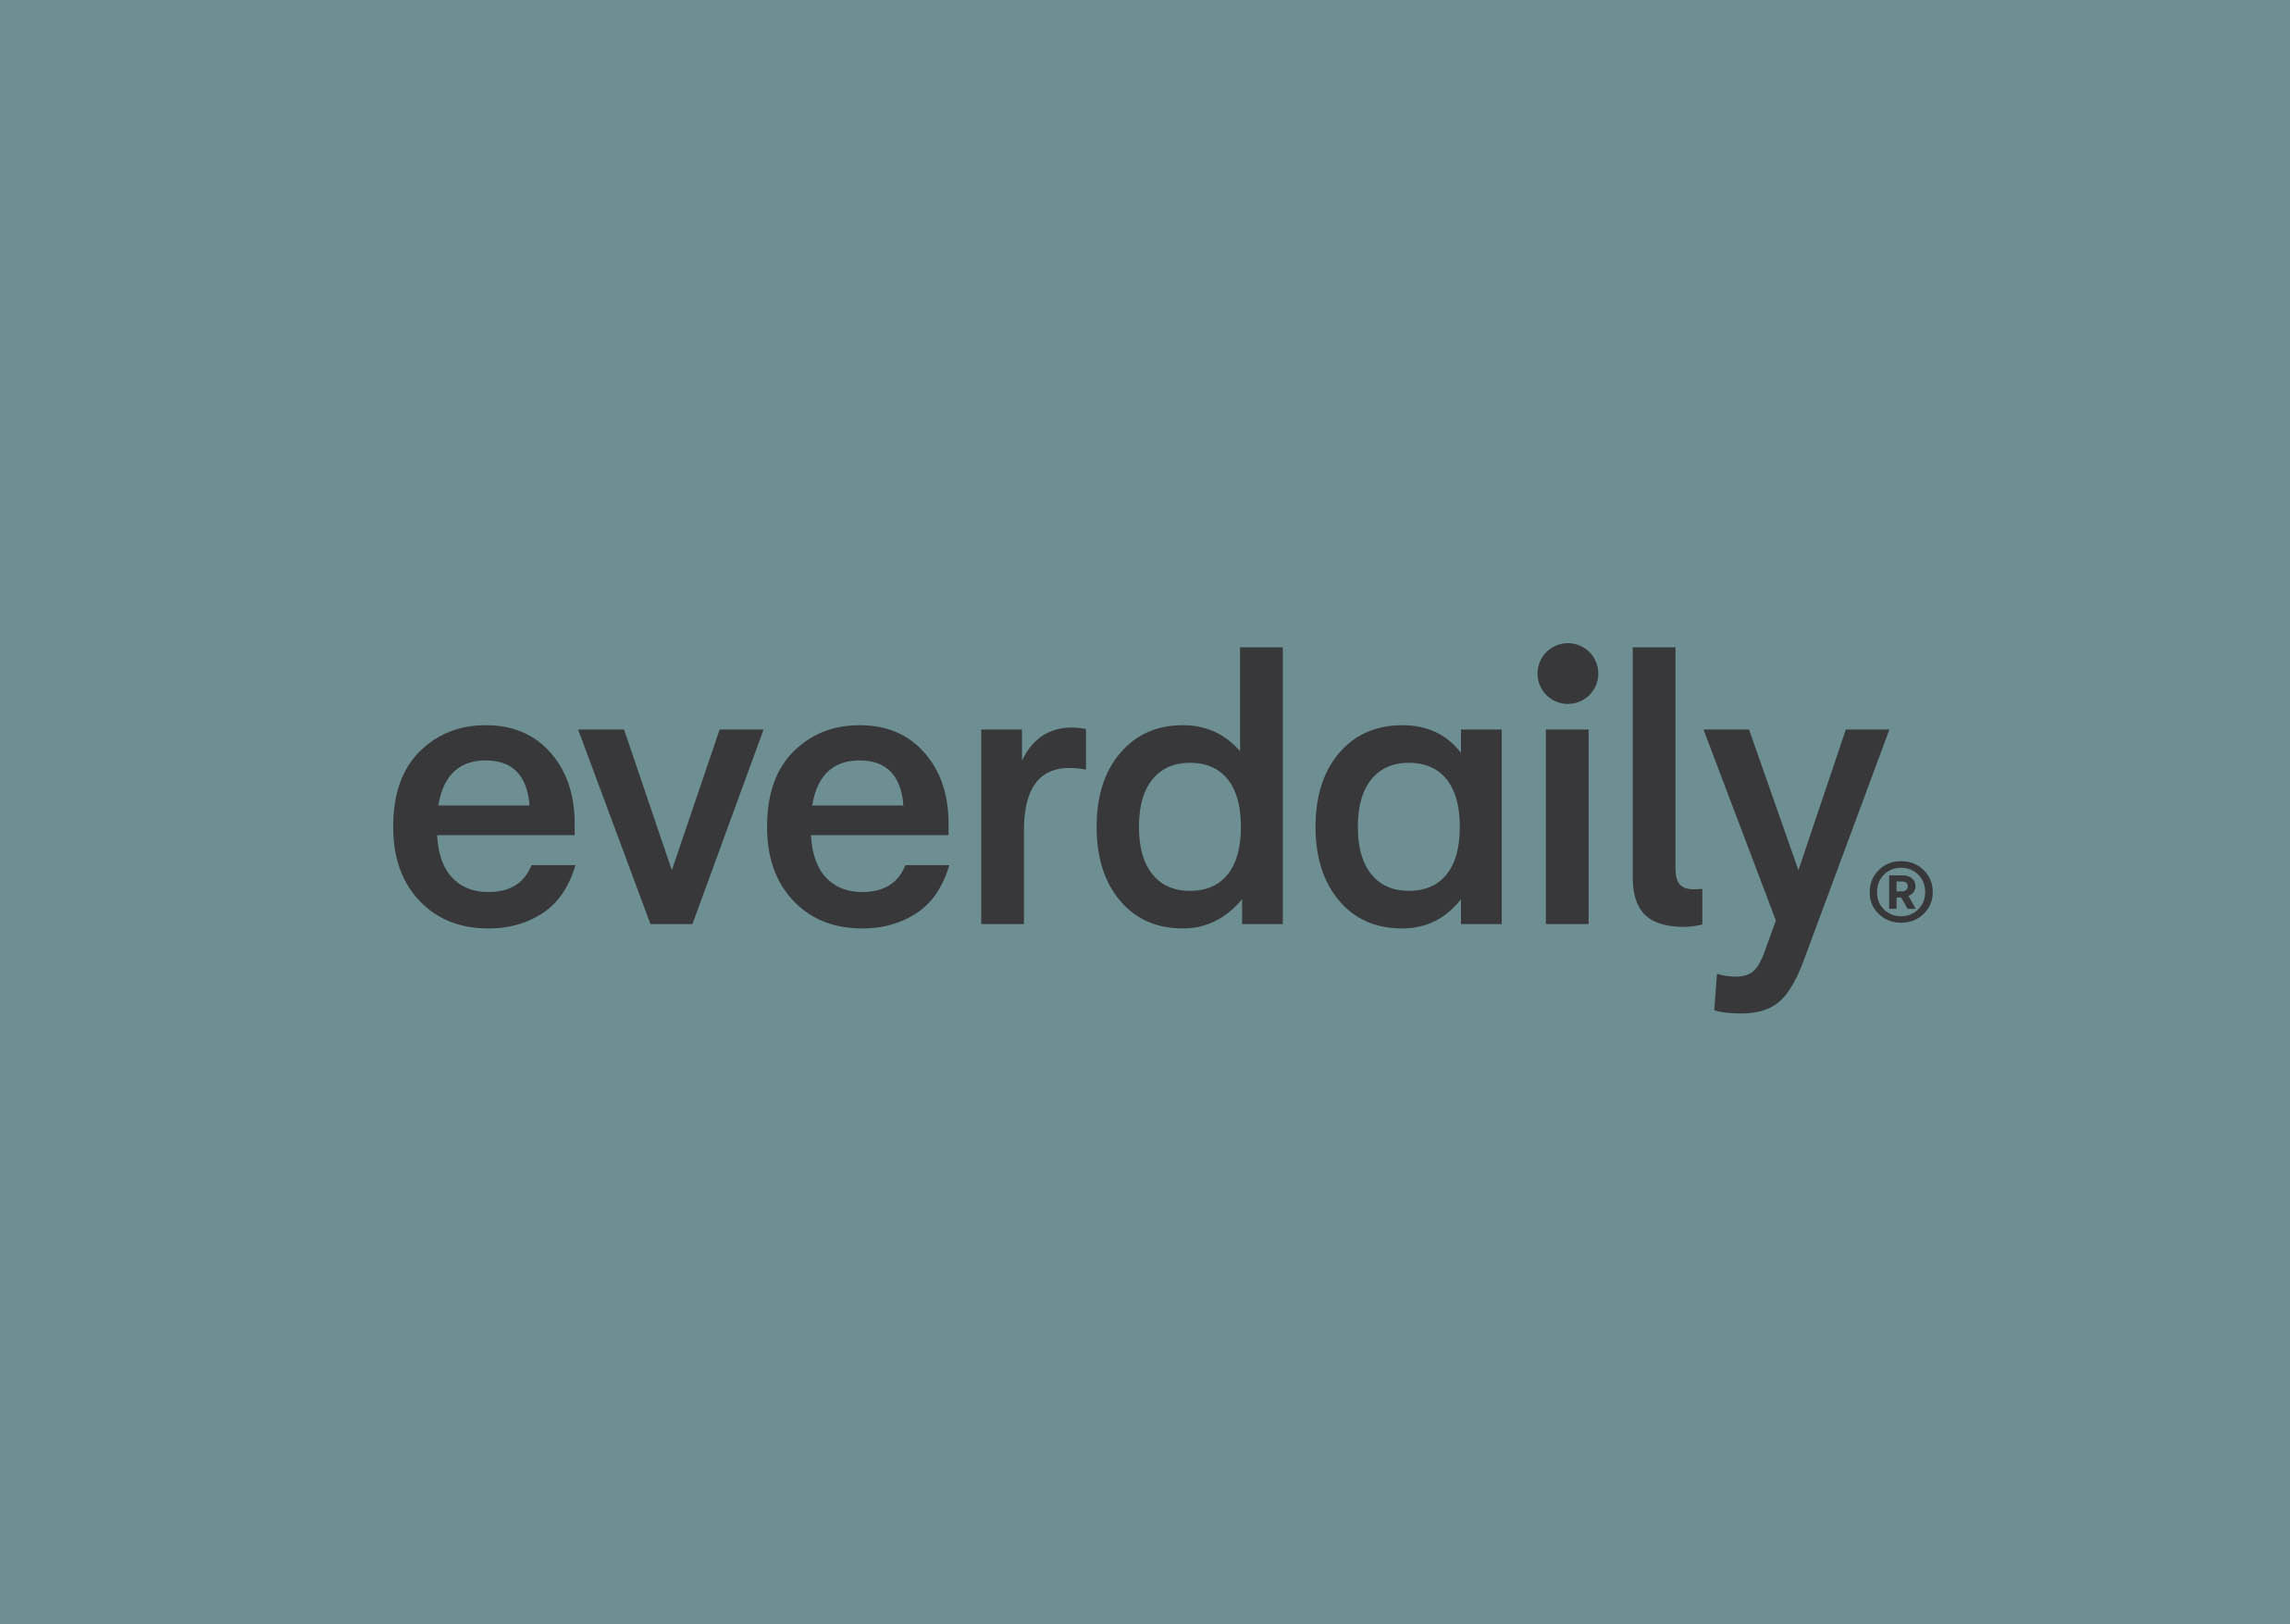 Functional Visual Communication Created by Marx Design for Household Cleaning Brand Everdaily